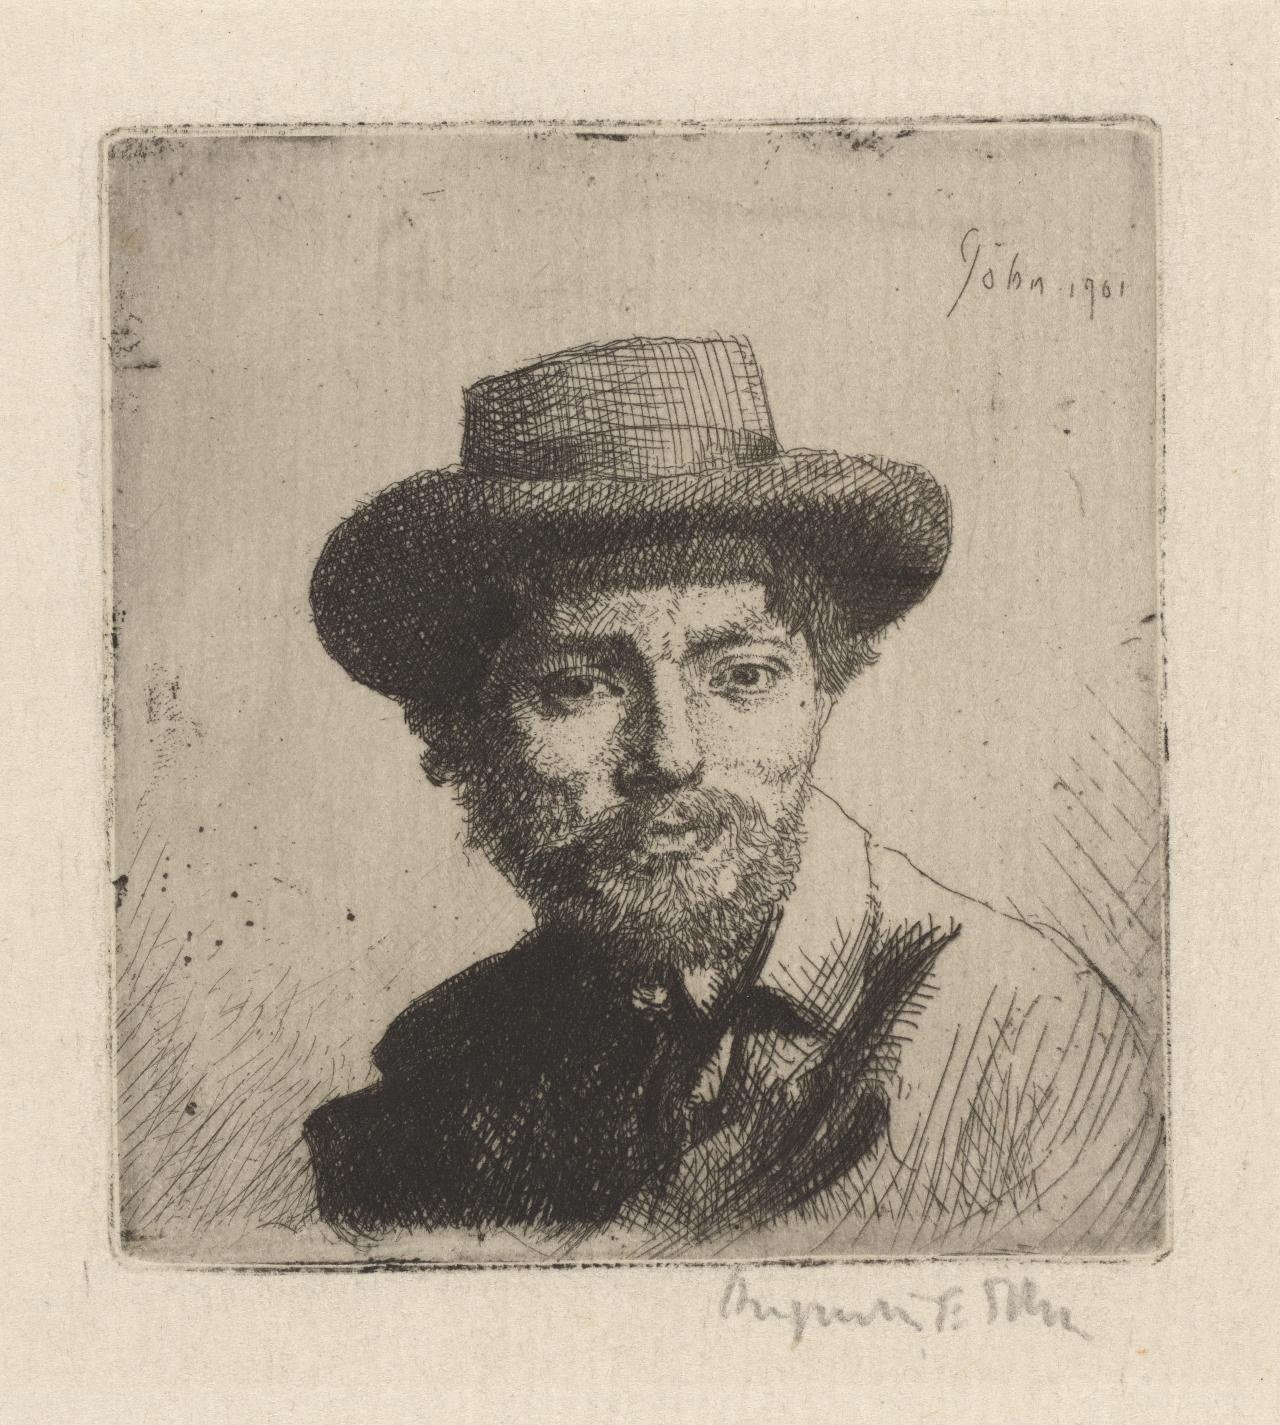 Portrait of the artists: Bust, full face, in a hat